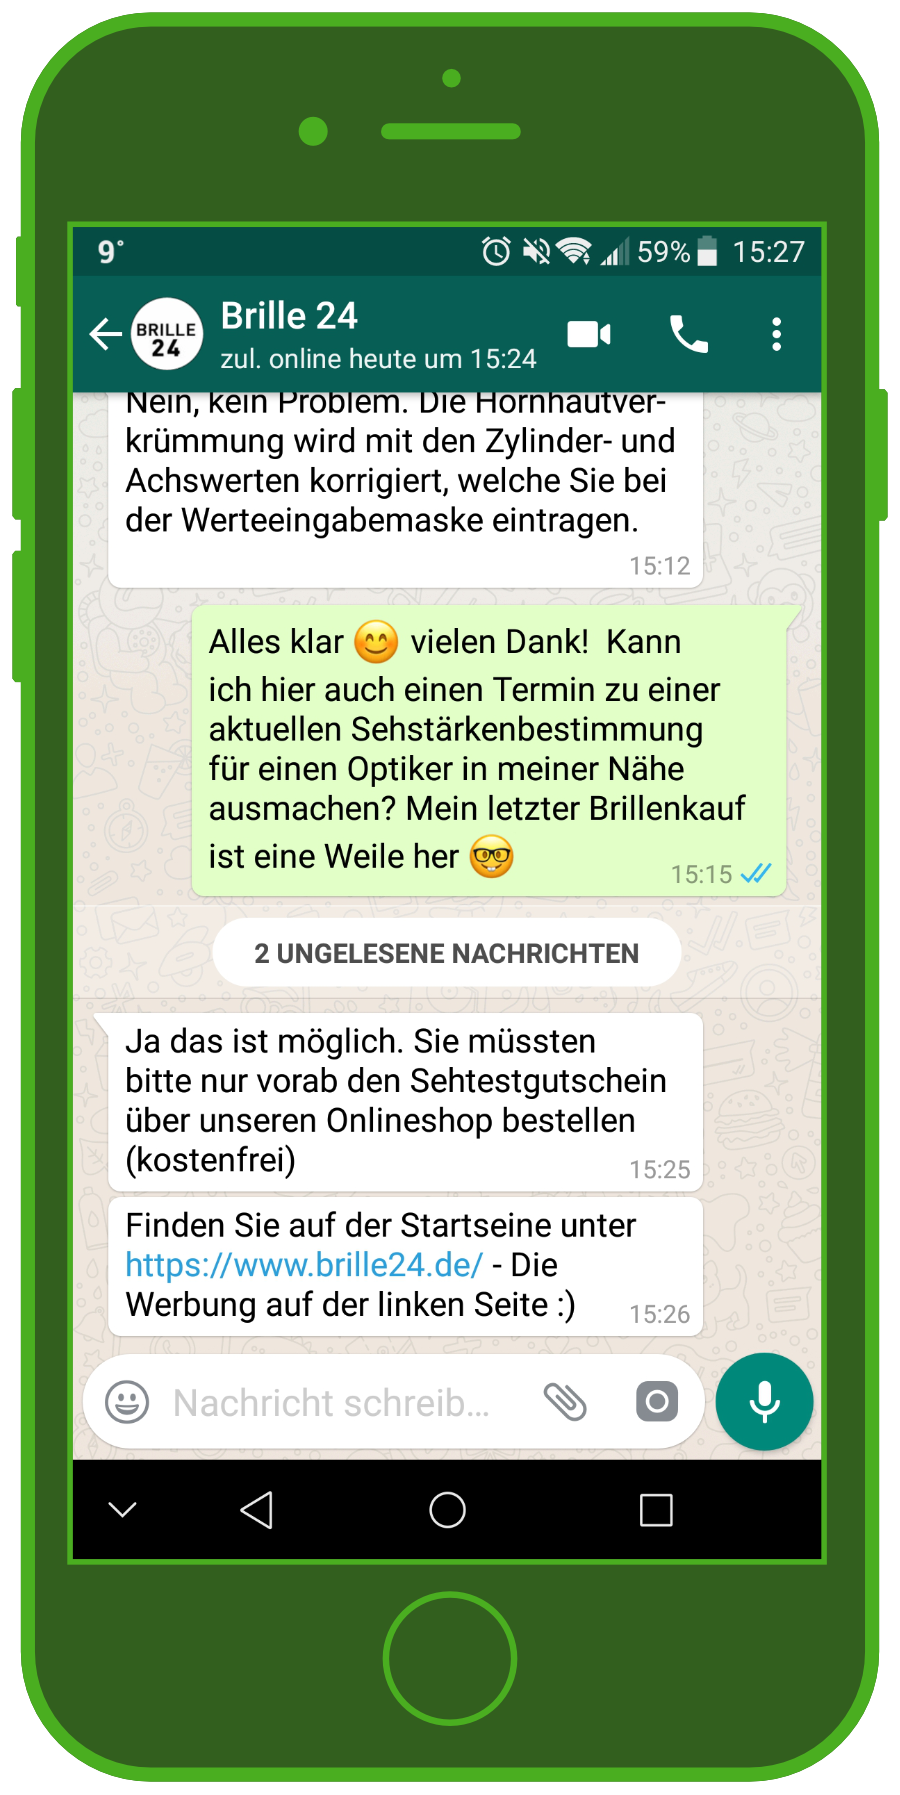 Customer Service and WhatsApp in E-commerce: 1:1 Chat, Chatbots